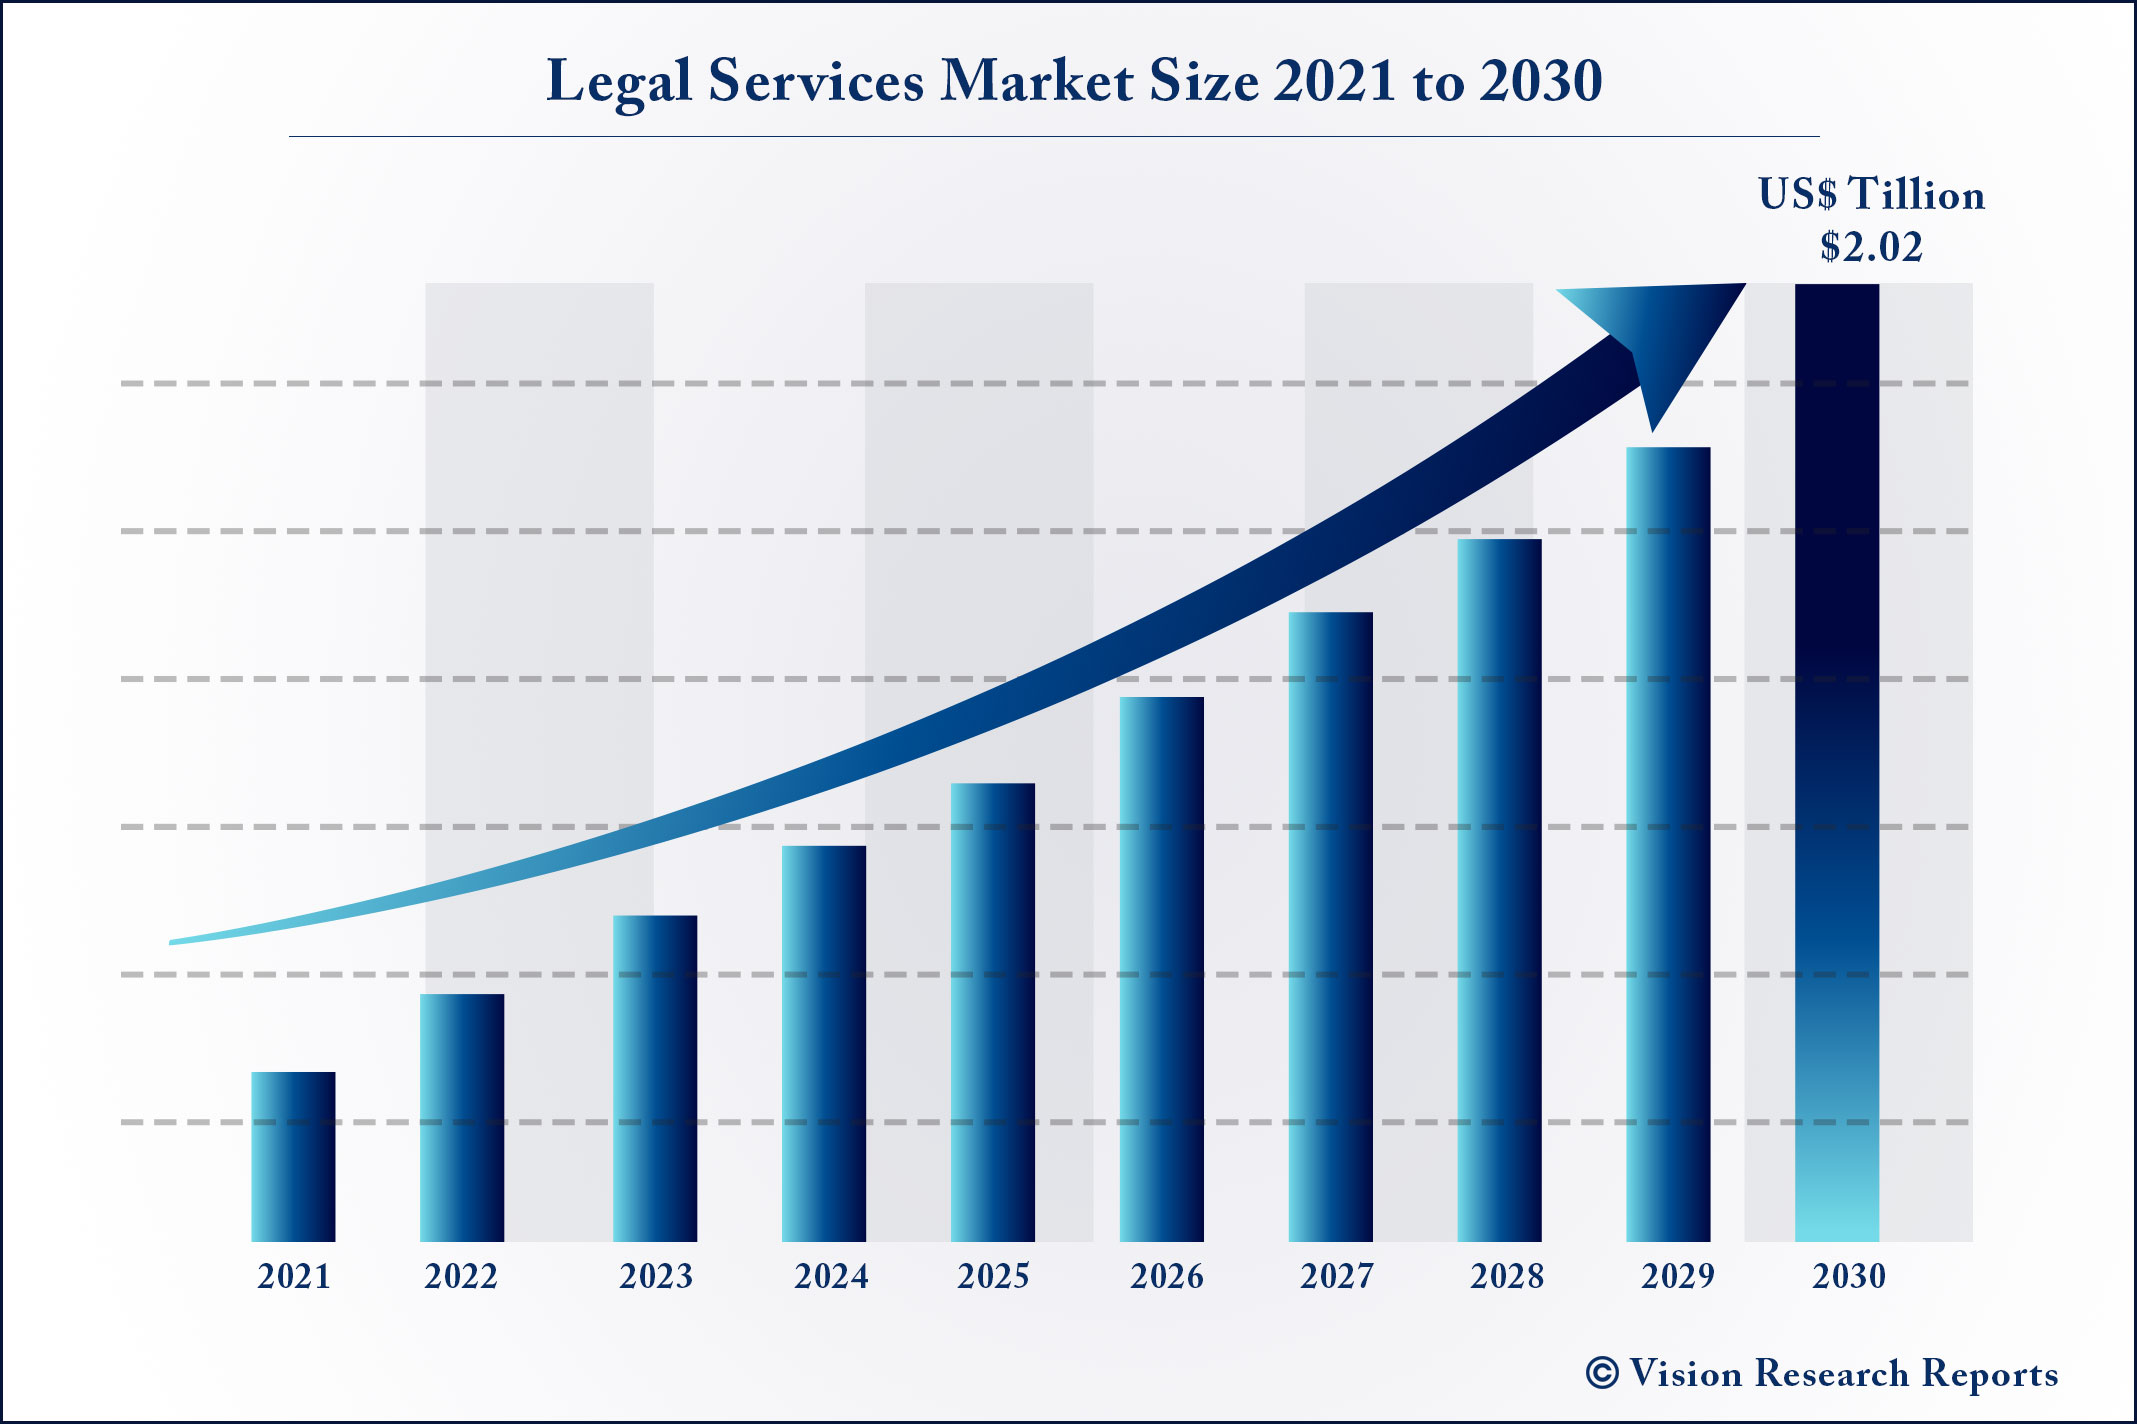 Legal Services Market Size 2021 to 2030